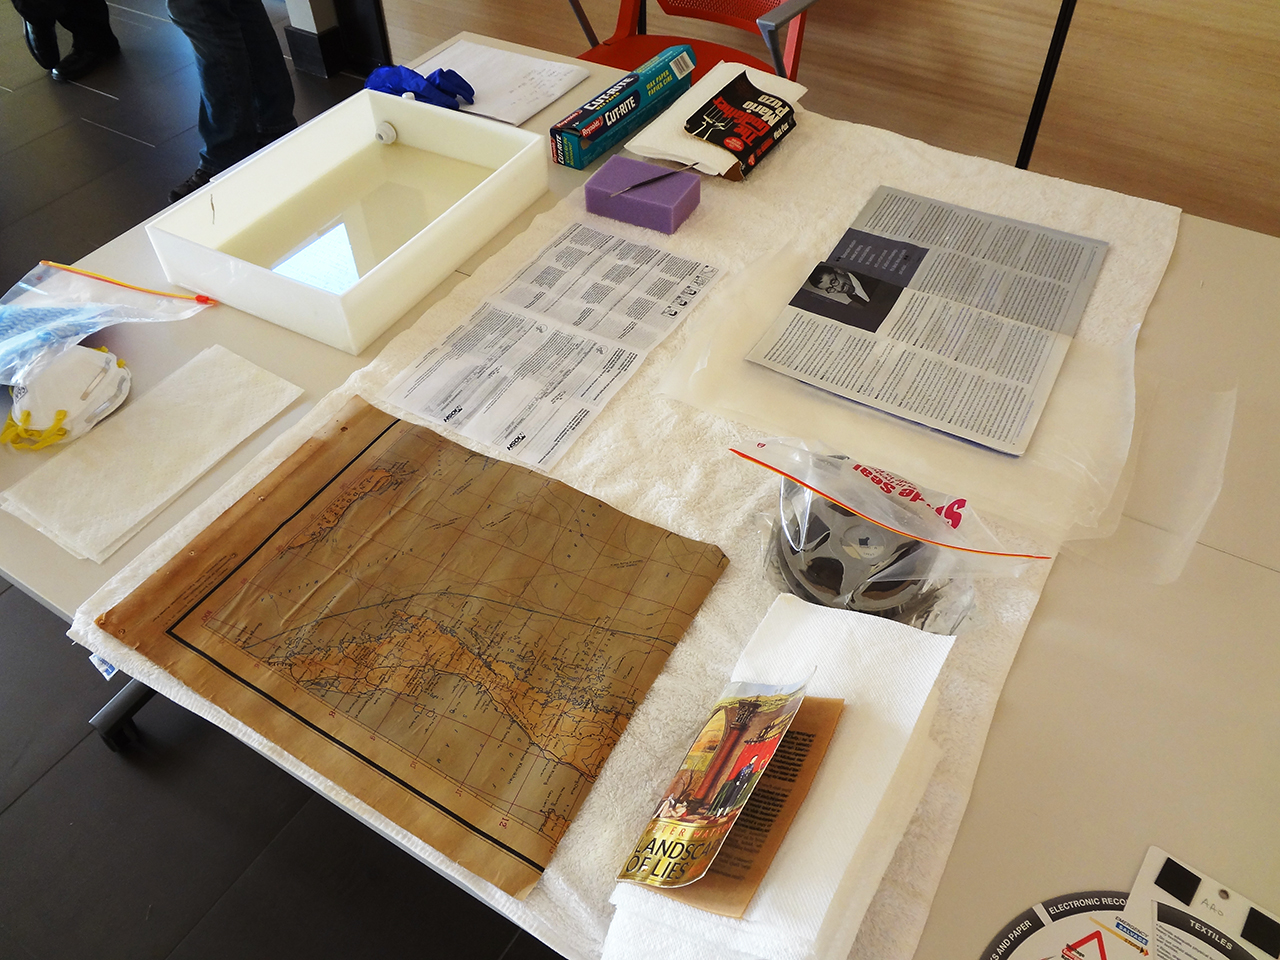 paper and media items used as practice materials